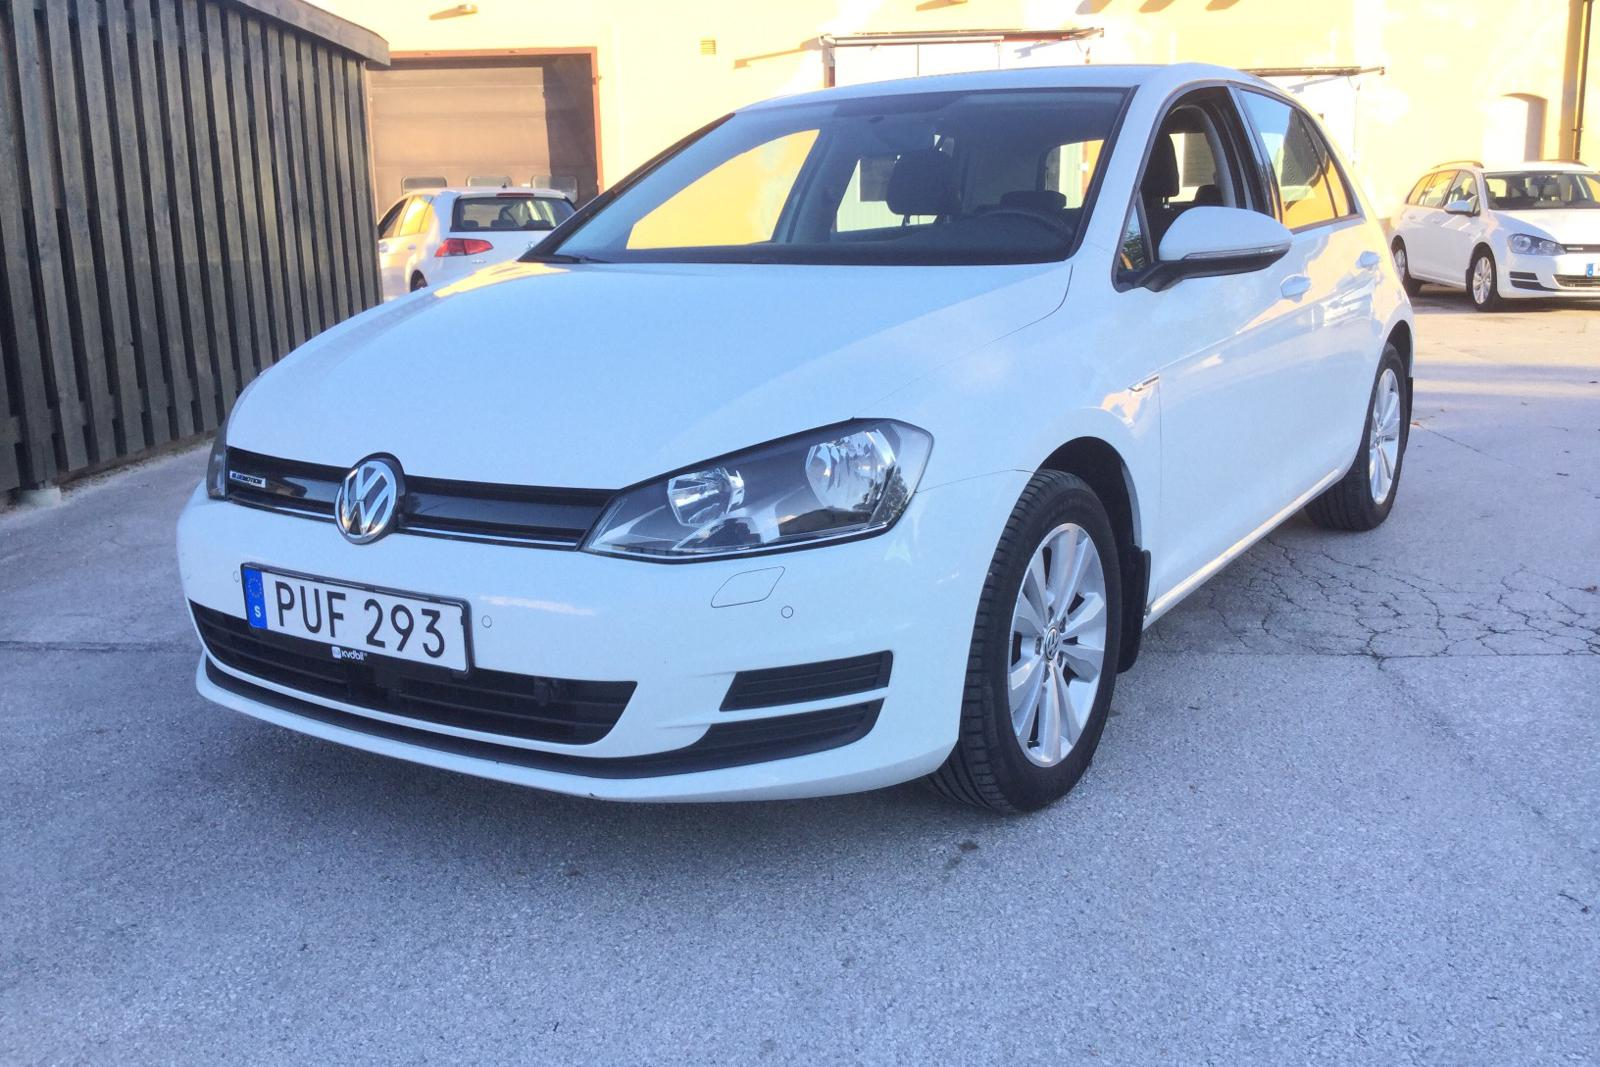 VW Golf VII 1.4 TGI 5dr (110hk) - 0 km - Manual - white - 2015